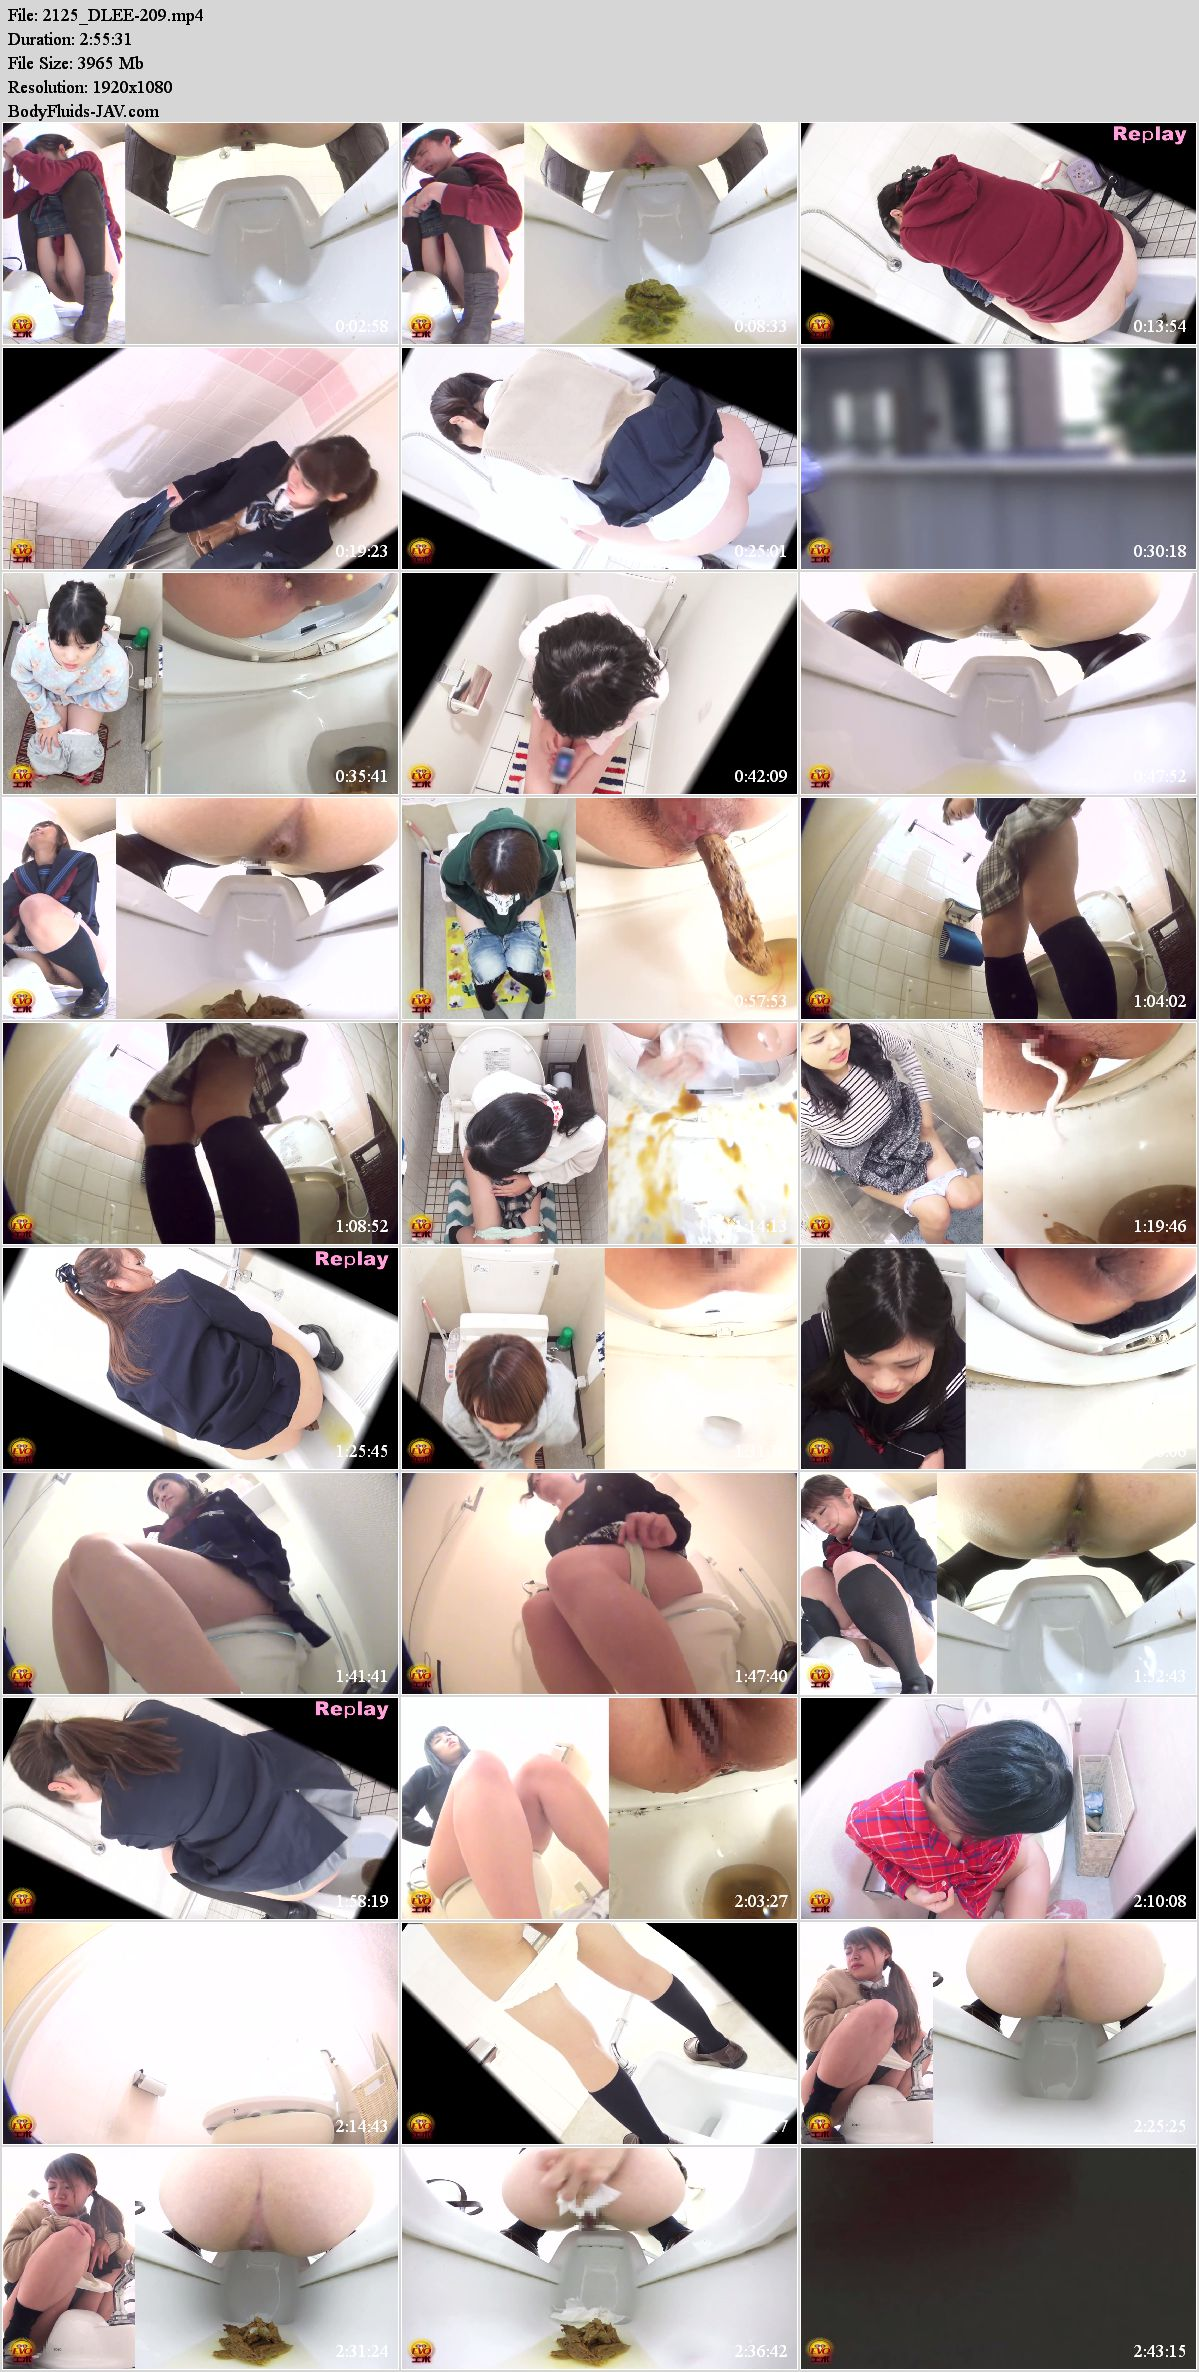 EE-209 Spy camera in toilet younger sisters pooping. (HD 1080p)